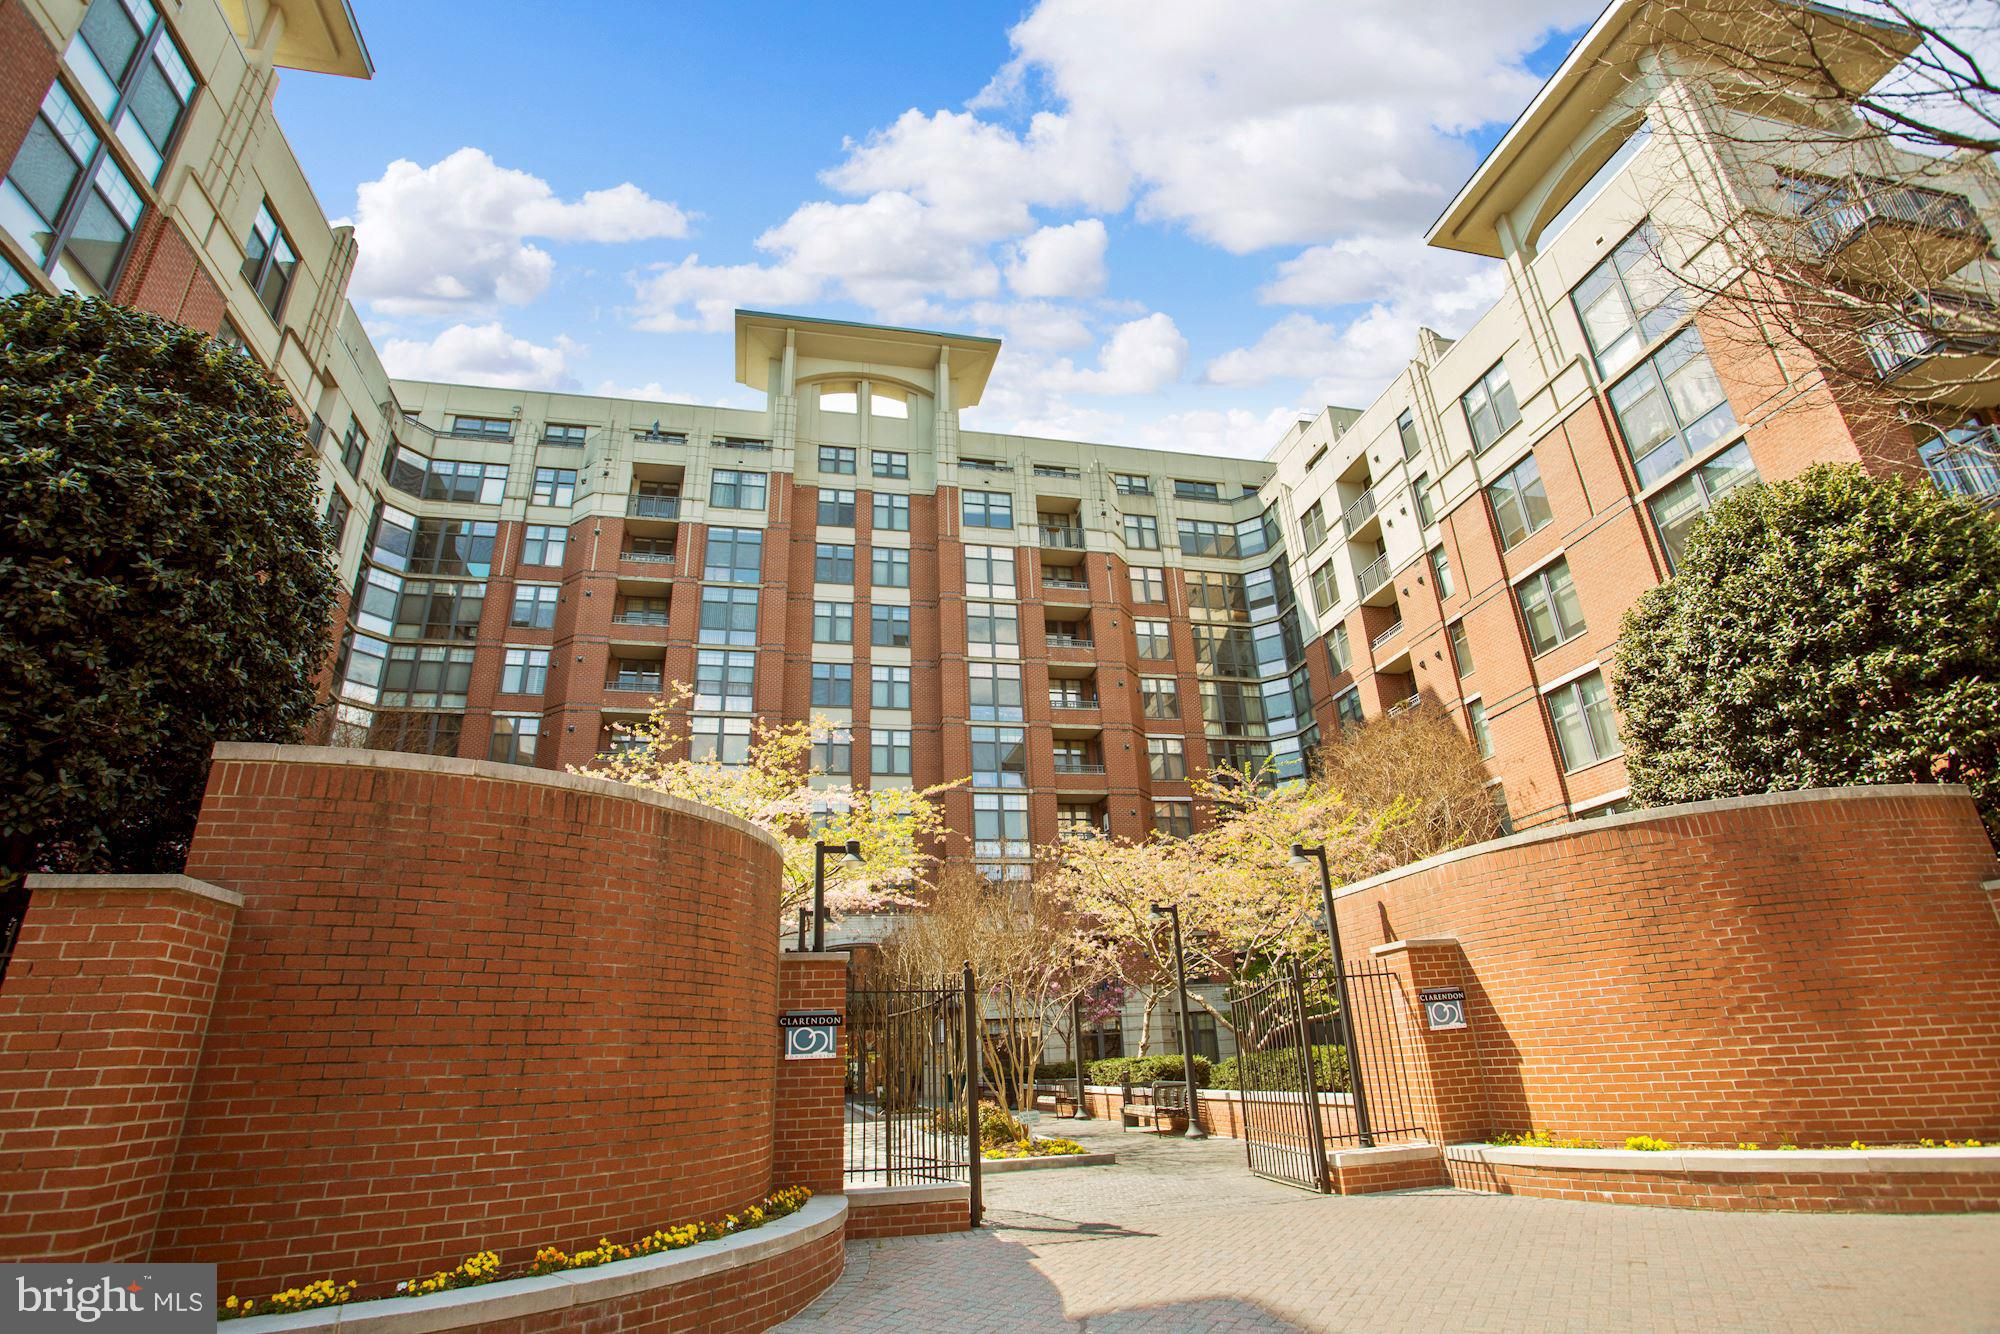 Absolutely stunning 1 bedroom, 1 bath condo with great city views in sought-after Clarendon 1021! Don't miss this immaculate boutique urban retreat featuring a gourmet kitchen with new appliances, a gas fireplace, in-unit laundry and garage parking. This haven in the heart of Arlington is just blocks from Clarendon Metro and steps to Clarendon shops, dining and entertainment. Enjoy Clarendon 1021 amenities like a rooftop pool, fitness center, business center, and a 24/7 front desk concierge!